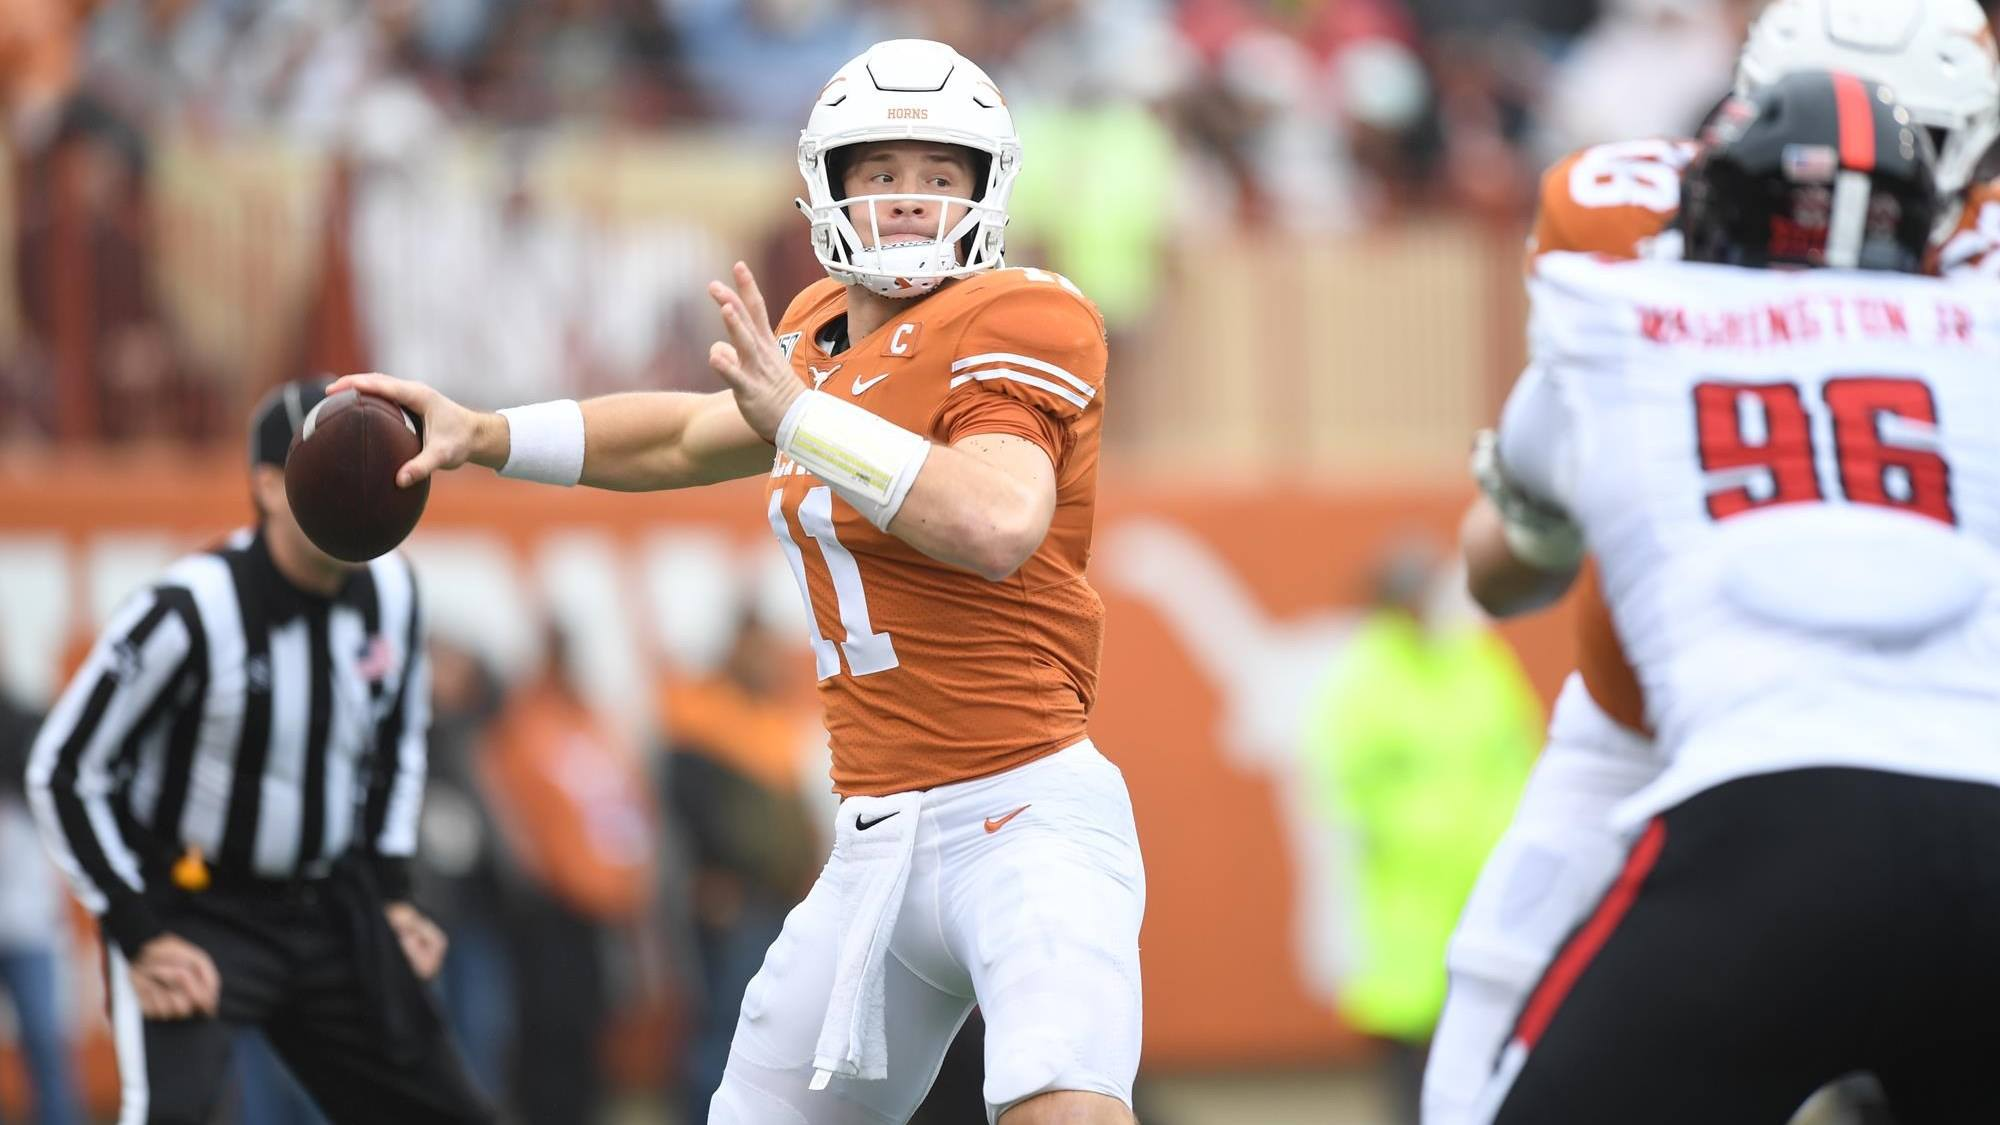 Sepak bola kampus Sam Ehlinger Week 2